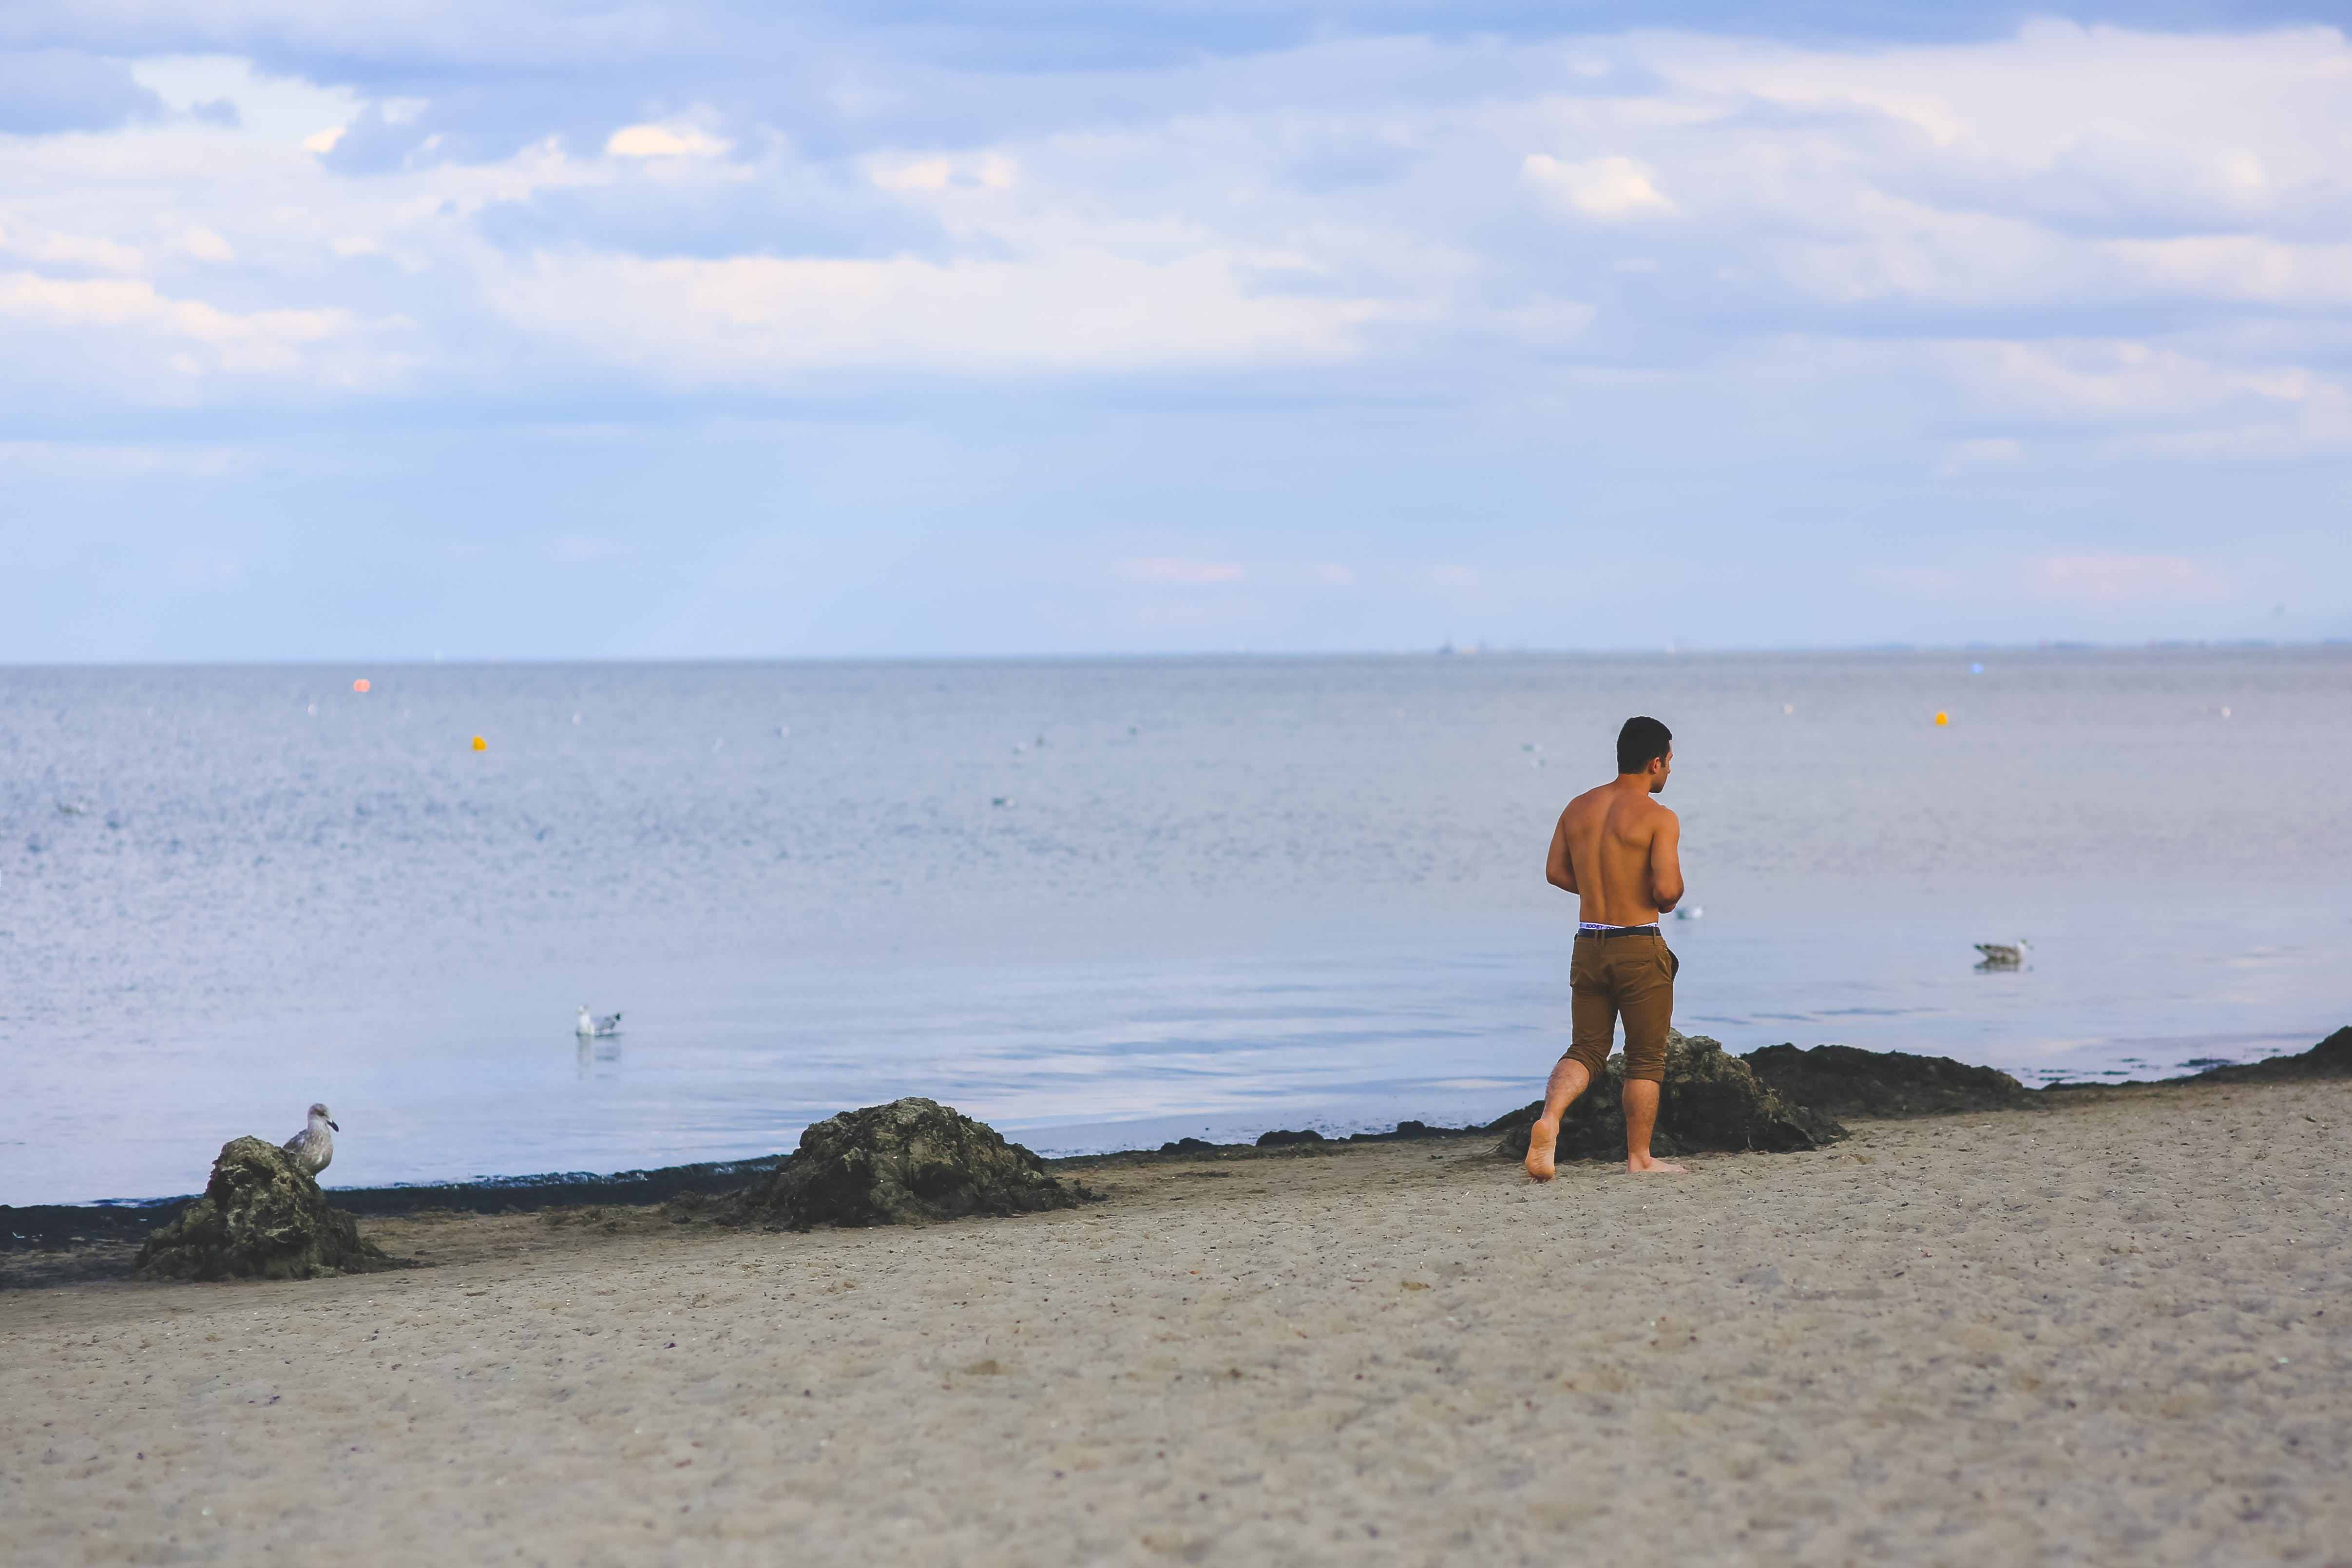 Young man walking on sand beach